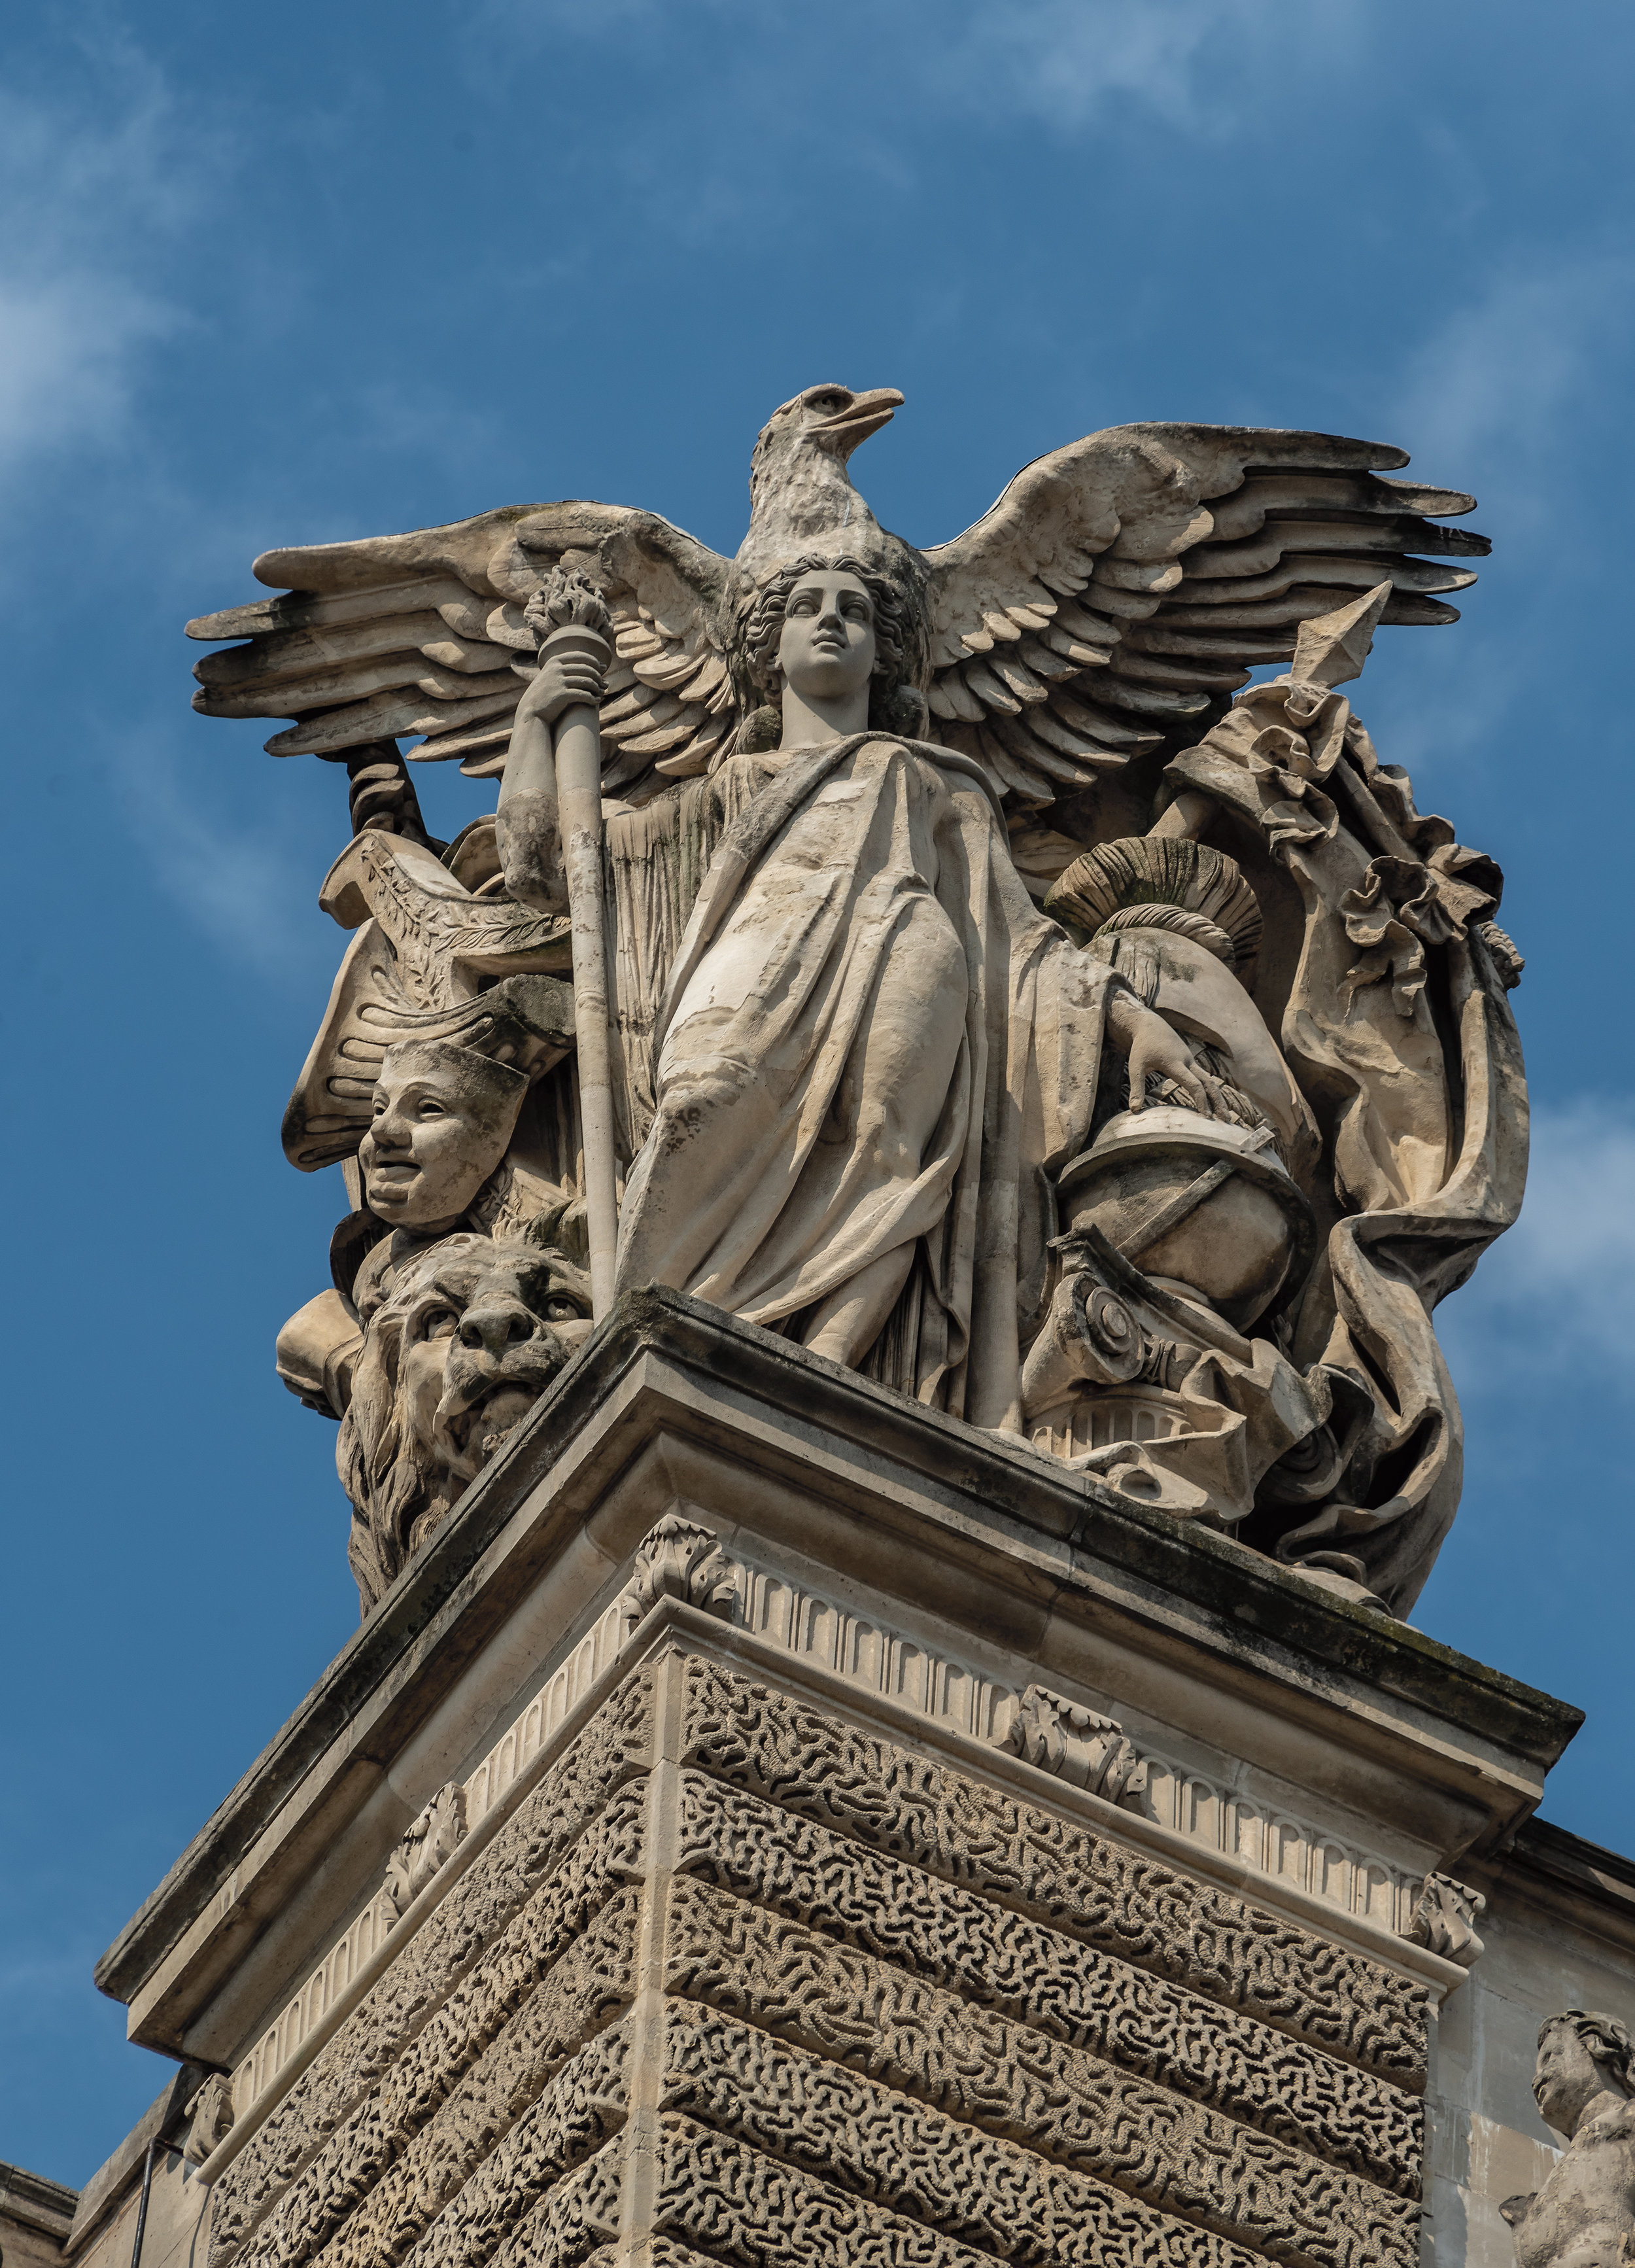 STATUE-WITH-BIG-WINGS.jpg